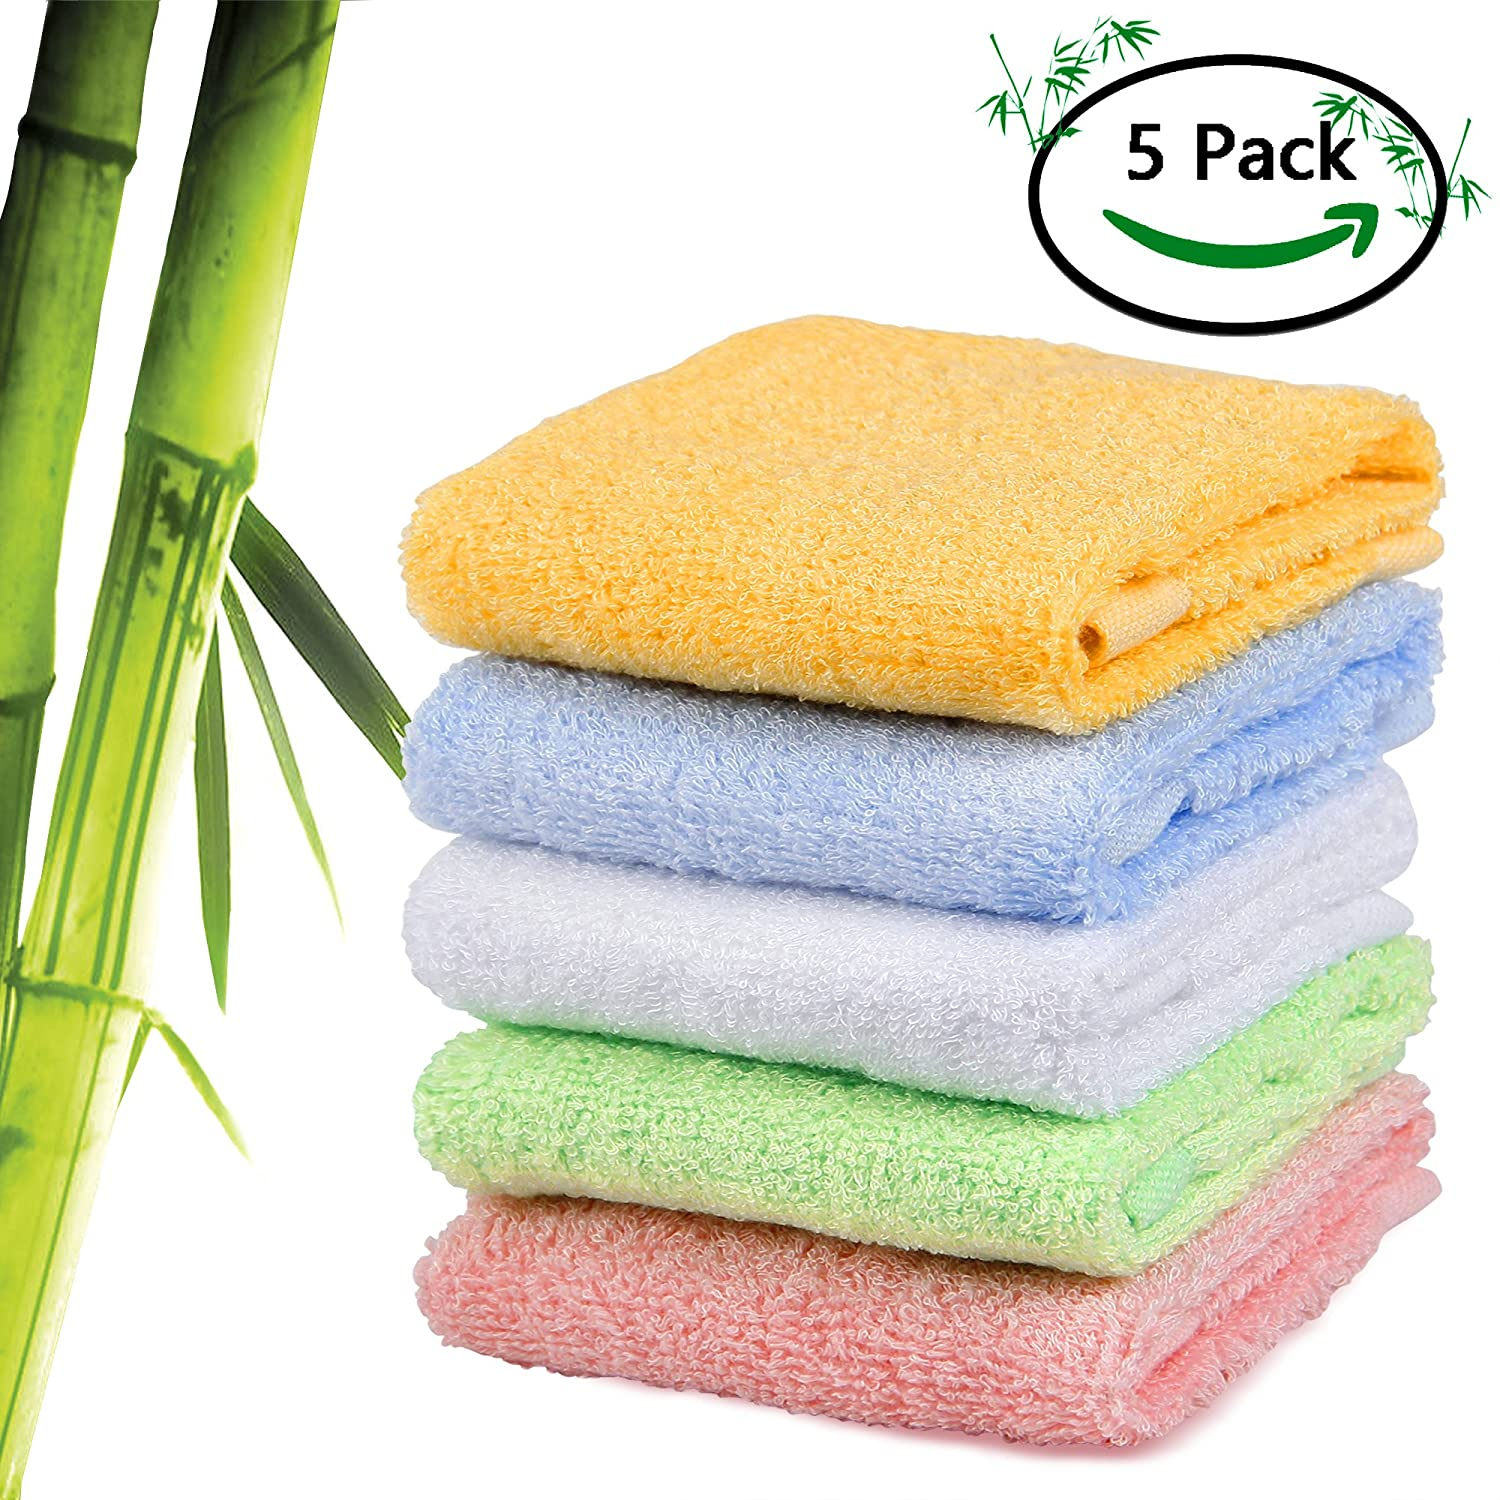 CNMB Baby Bamboo Bath Washcloths - Ultra Soft Hypoallergenic Newborn Baby Face Towels for Sensitive Skin, Reusable Wipes - Perfect Baby Gifts, Baby Registry, Baby Travel Bathing Kit BBWS0002578CM